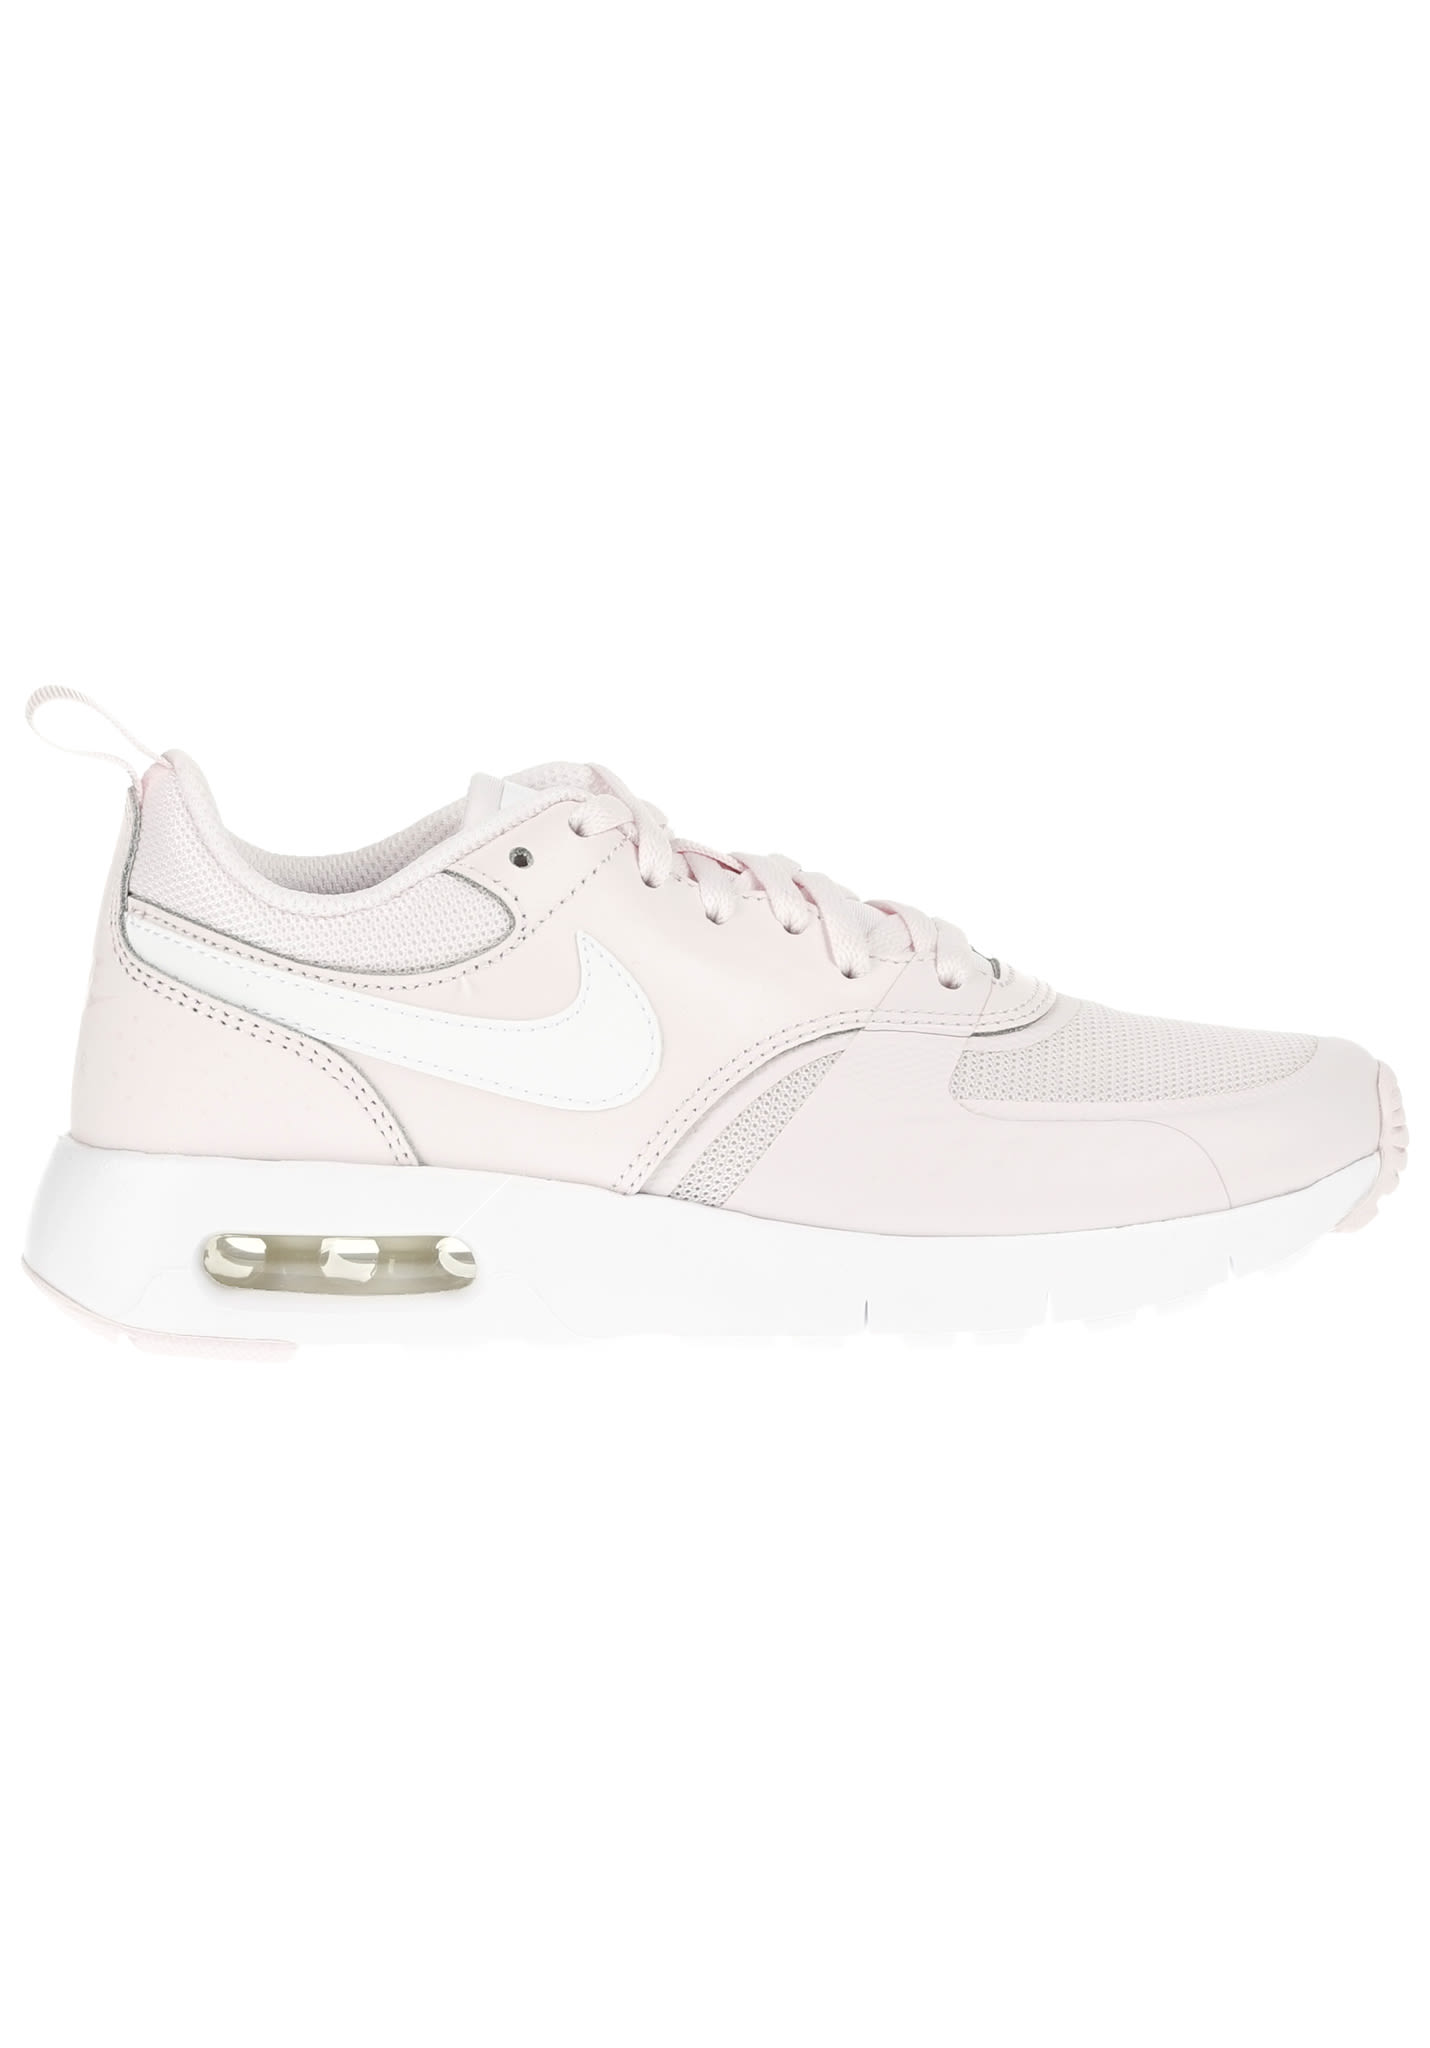 NIKE SPORTSWEAR Air Max Vision - Sneakers - Pink - Planet Sports 5c6c3494bb1f